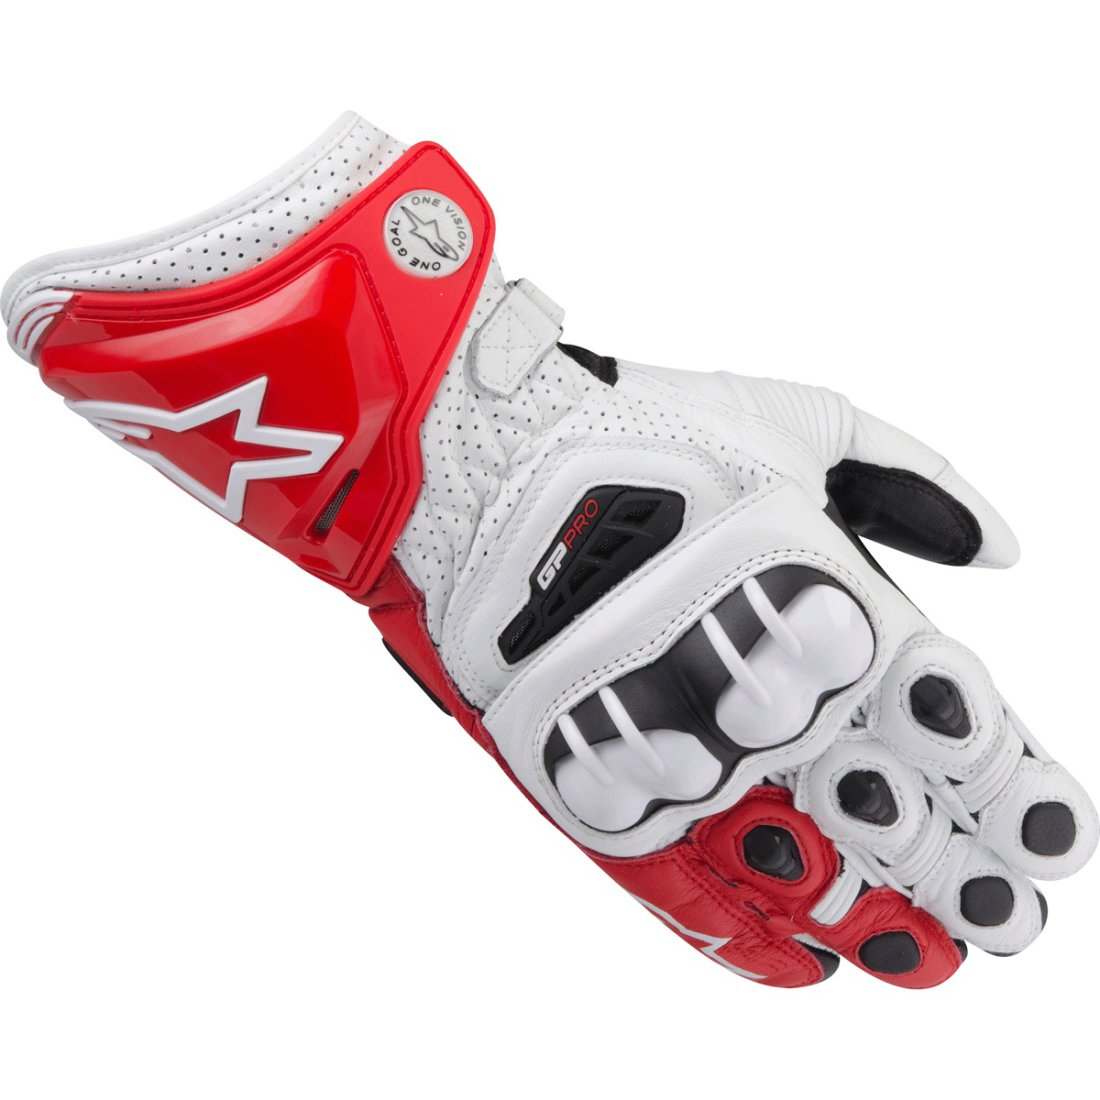 alpinestars gp pro white red gloves motocard. Black Bedroom Furniture Sets. Home Design Ideas